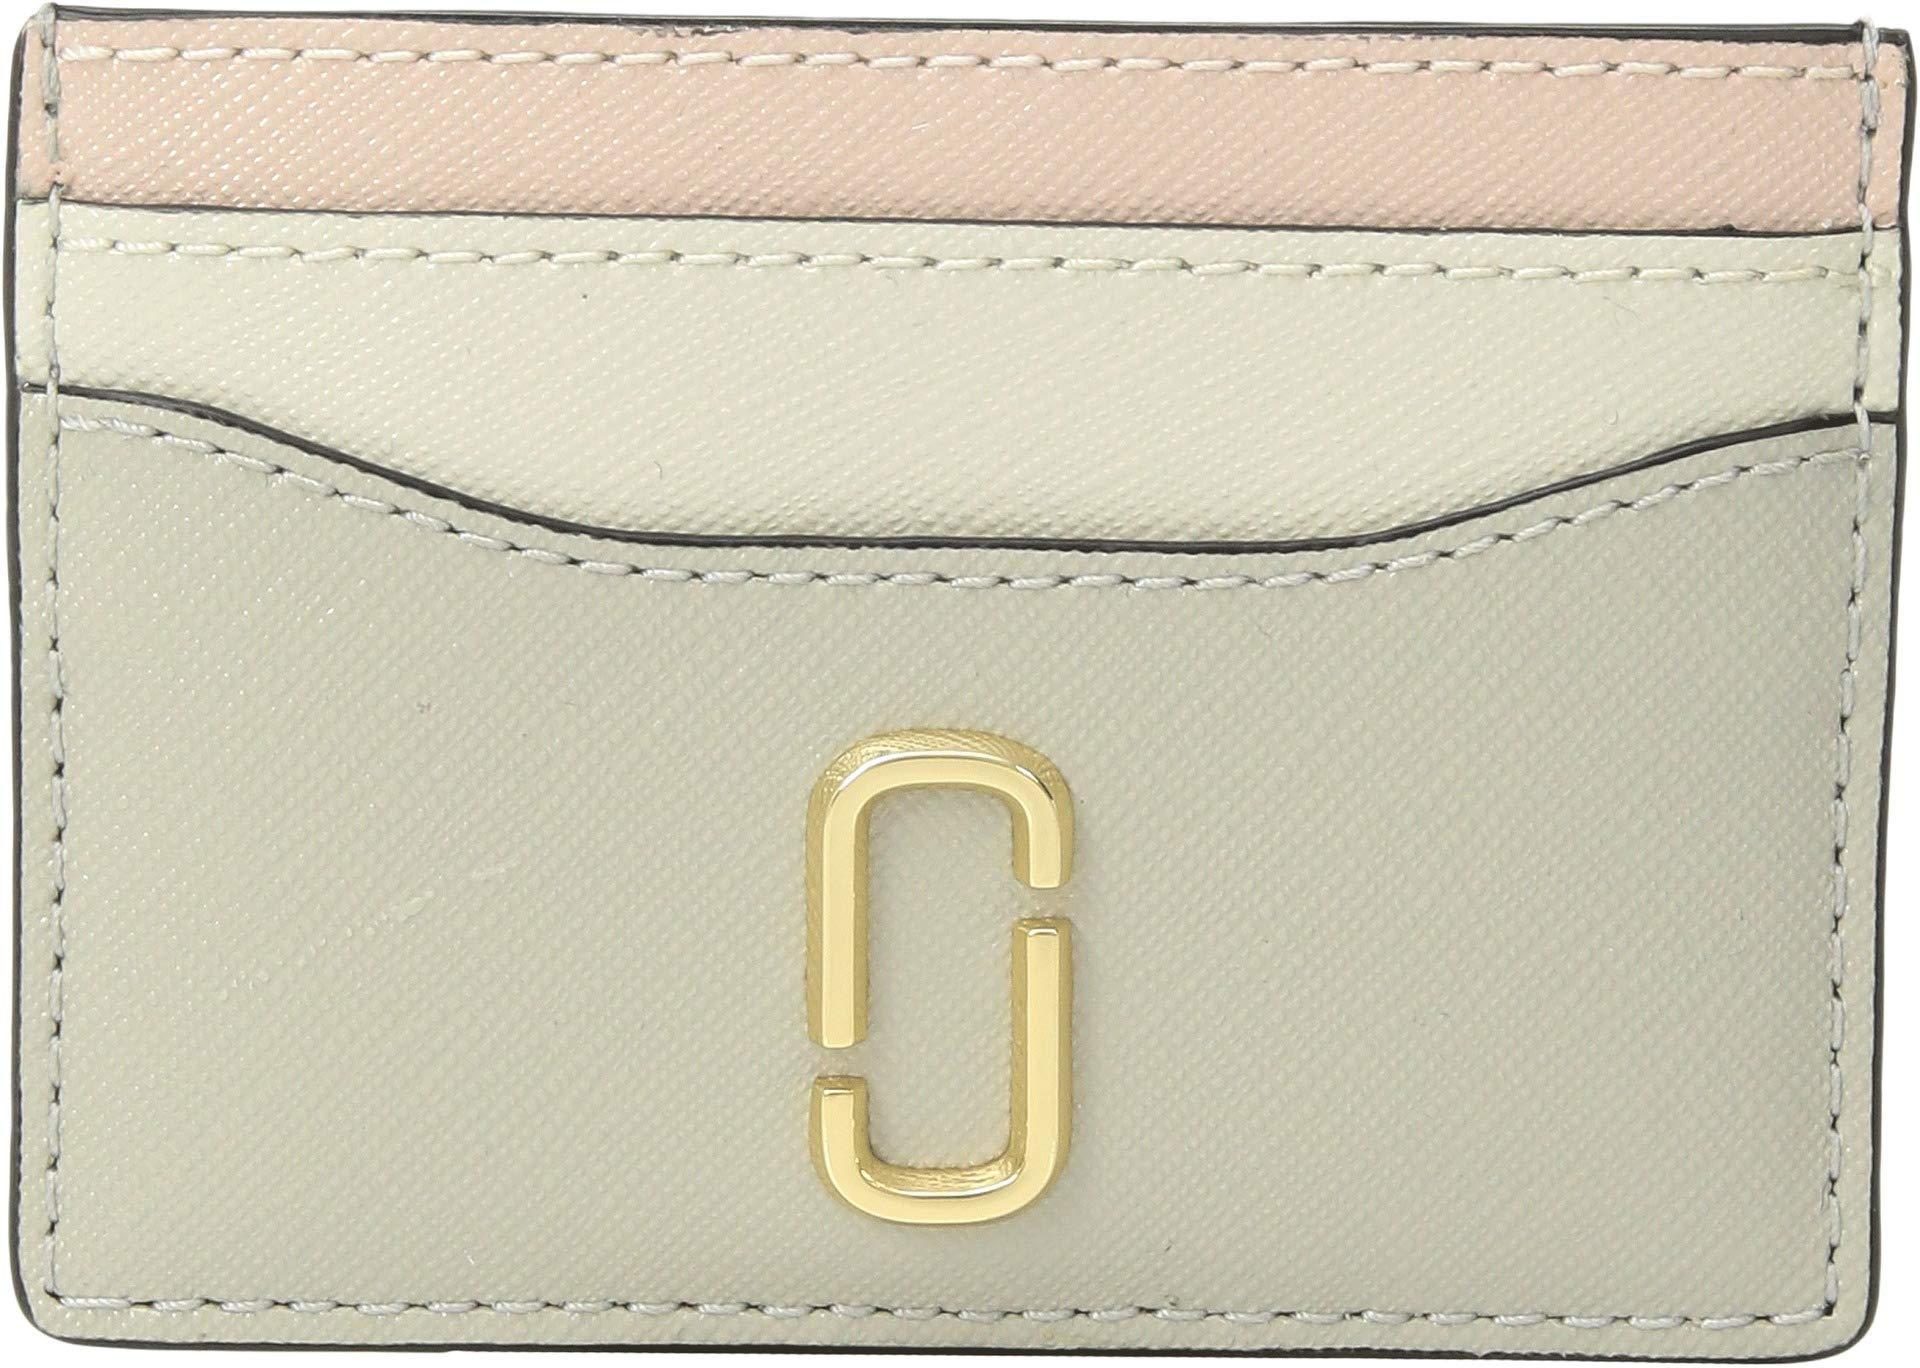 Marc Jacobs Women's Snapshot Card Case, Dust Multi, One Size by Marc Jacobs